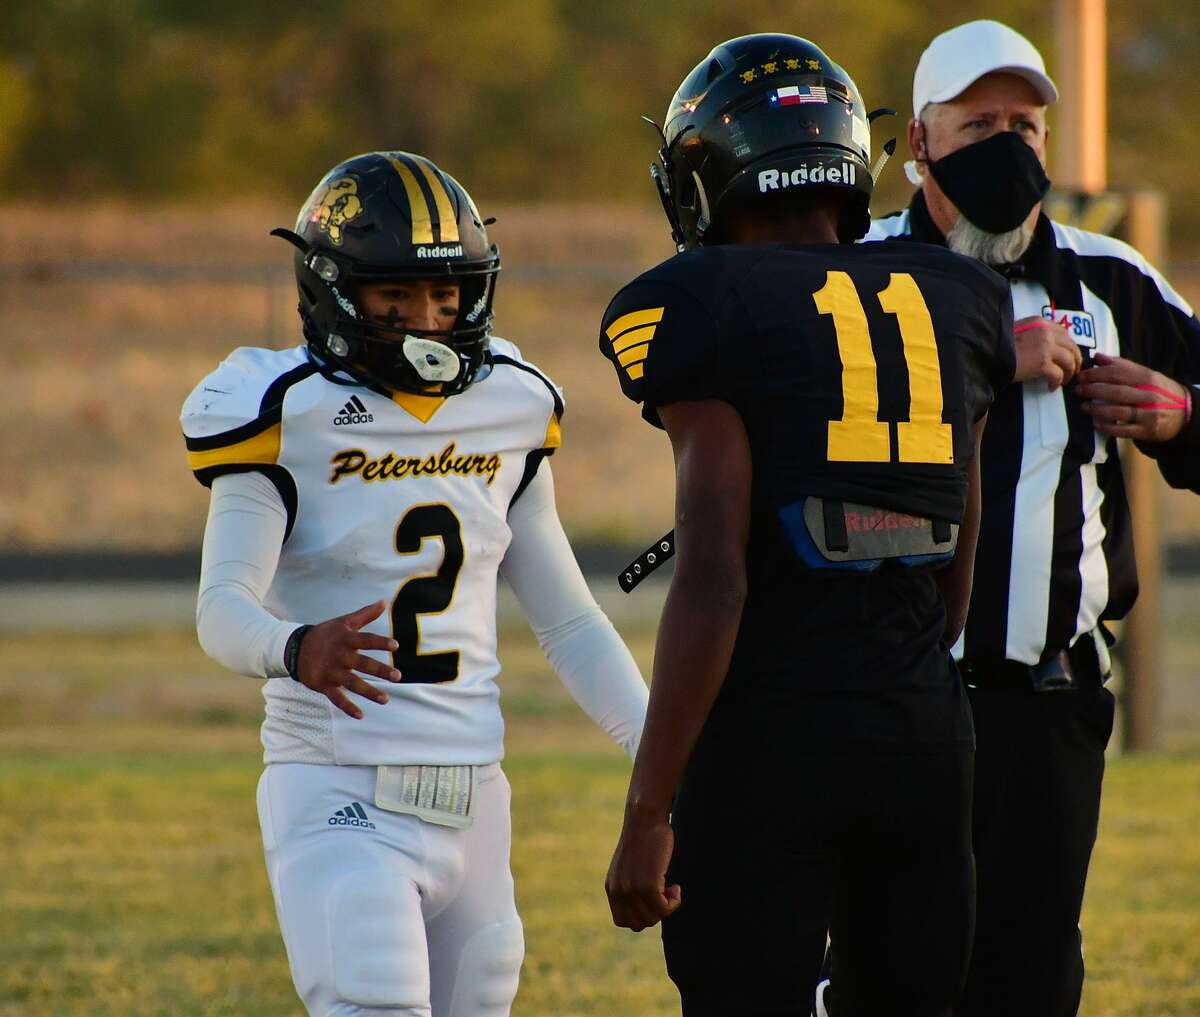 Petersburg pulled away in the second half to defeat Kress 84-44 in a District 2-1A Division I football game on Friday, Oct. 16, 2020 in Kress.